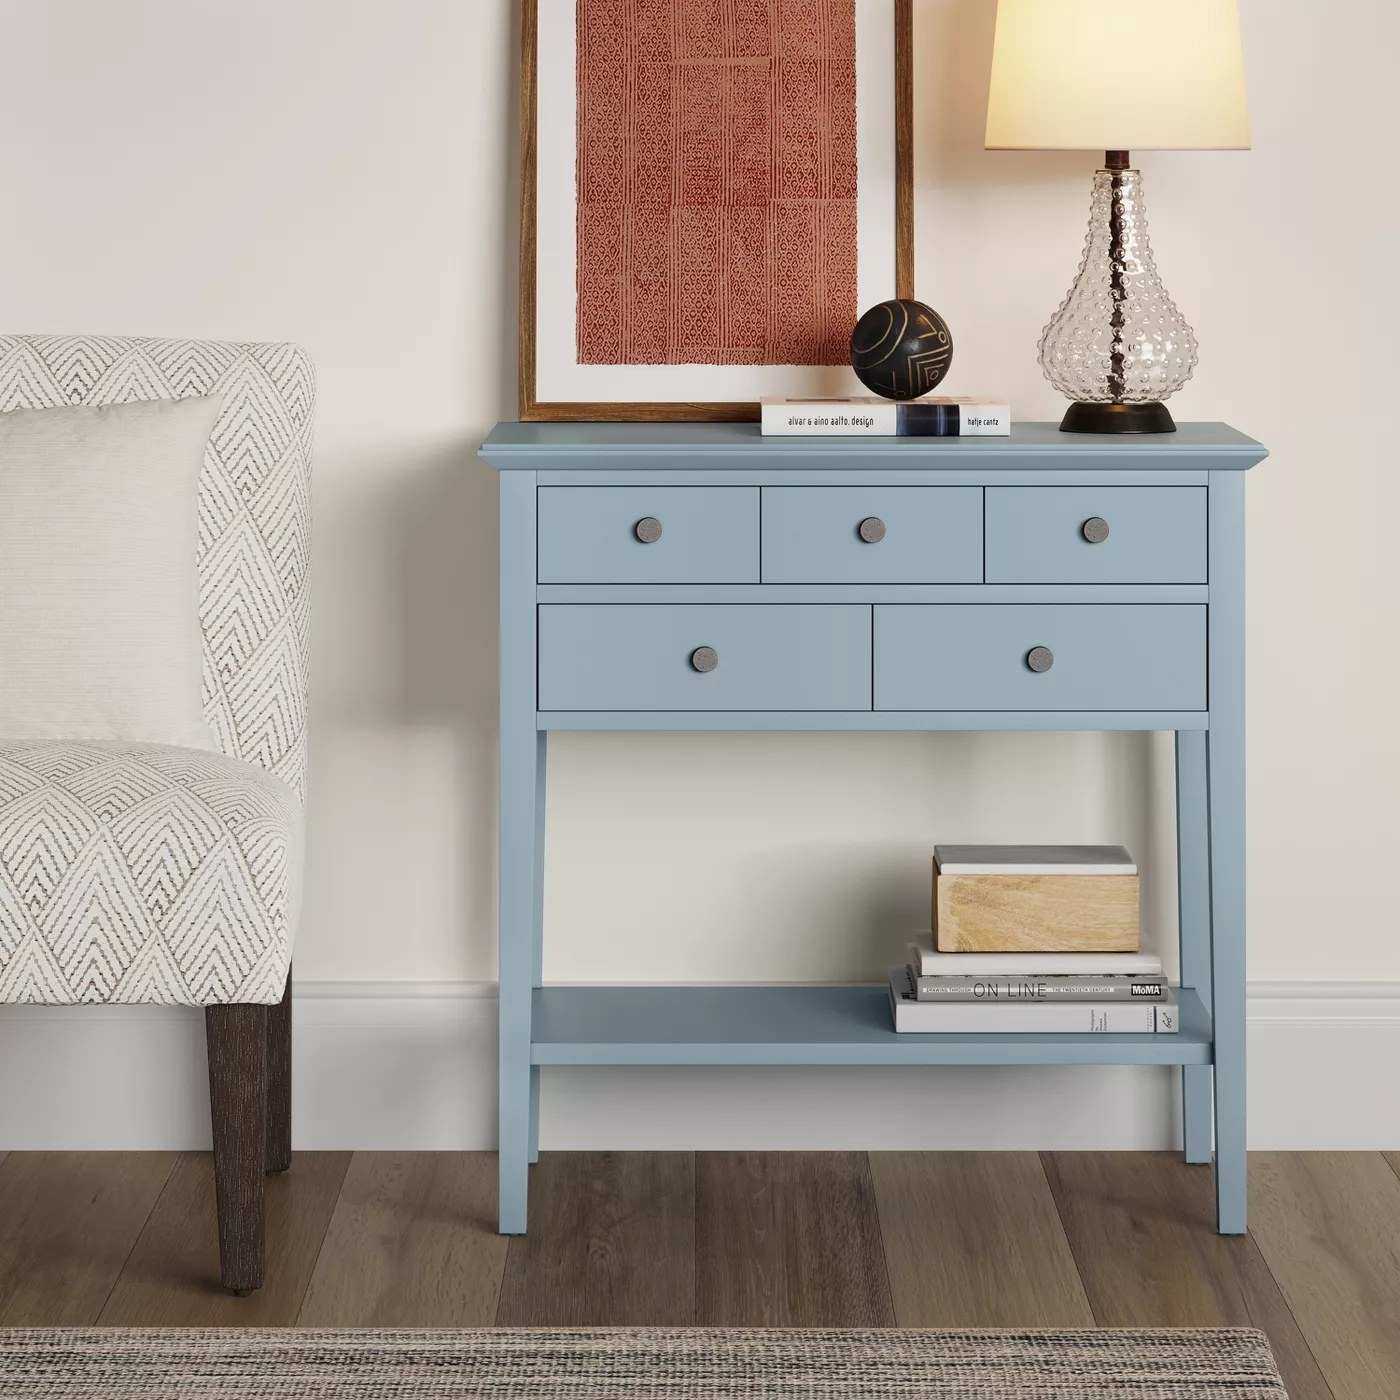 The small light blue end table with five drawers